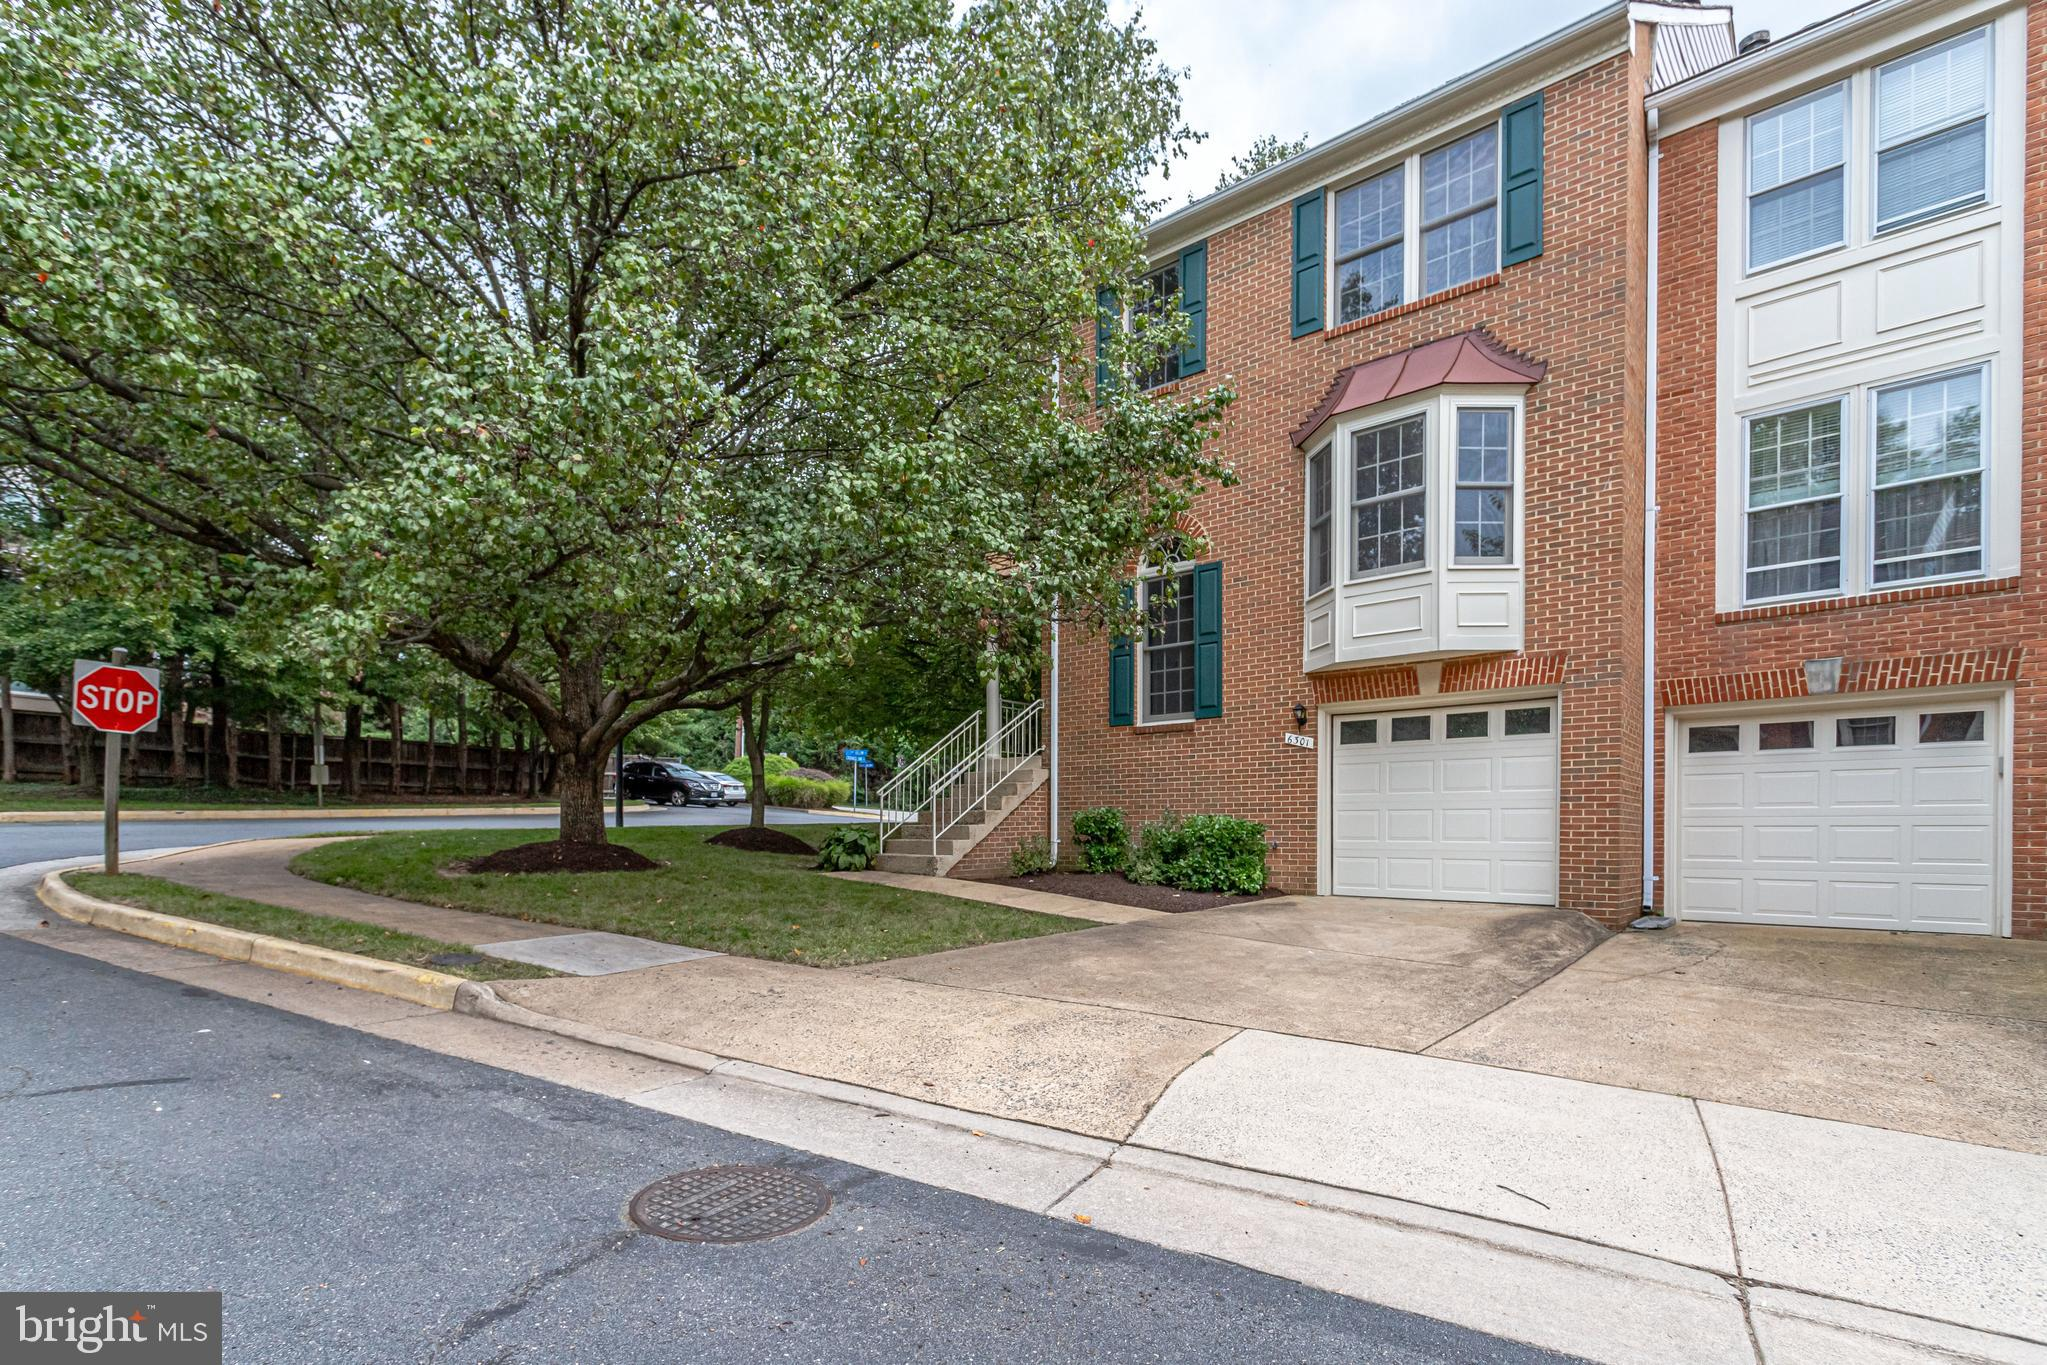 Step into this spacious, bright 3 bedrooms, 2 full baths, and 2 half baths brick garage townhome in the beautiful, quiet neighborhood of Seven Oaks Place. Tucked away in Falls Church, this home is less than one mile from the East Falls Church Metro and close to all the amenities of Seven Corners.  Warm hardwoods, large room sizes, plenty of natural light and crisp moldings create warm and inviting indoor space, while the corner lot, upper level deck, and lower level enclosed yard and patio all come together to provide a true urban oasis. On the main level you will find gleaming hardwood floors, a double-sided gas fireplace providing ambience for both the living and dining rooms, and a gourmet kitchen with plenty of counter space, stainless appliances, gas cooking, a breakfast bar, and an eating area. A half bath is located just off the living room and completes the main level. Upstairs you will find three bedrooms including the primary bedroom suite with vaulted ceilings, a walk-in closet, and a luxurious bath with a jacuzzi tub, separate shower, and dual sinks. 2 additional sizable bedrooms and a hall full bathroom complete the upper level. The lower level features a large family room with a wood-burning fireplace with access to the fully fenced back yard living space and patio. A second half bath is also located on the lower level, along with the laundry area and access to the one-car garage. Within minutes of this fabulous home are numerous options for great dining and shopping including the popular Mosaic District, Tysons, Seven Corners Falls Church City, and Clarendon. Commuters will appreciate the easy access to DC, Pentagon, the Metro, and bus stations. If you're looking for a quality home in a spectacular location, you've found it! Welcome Home!